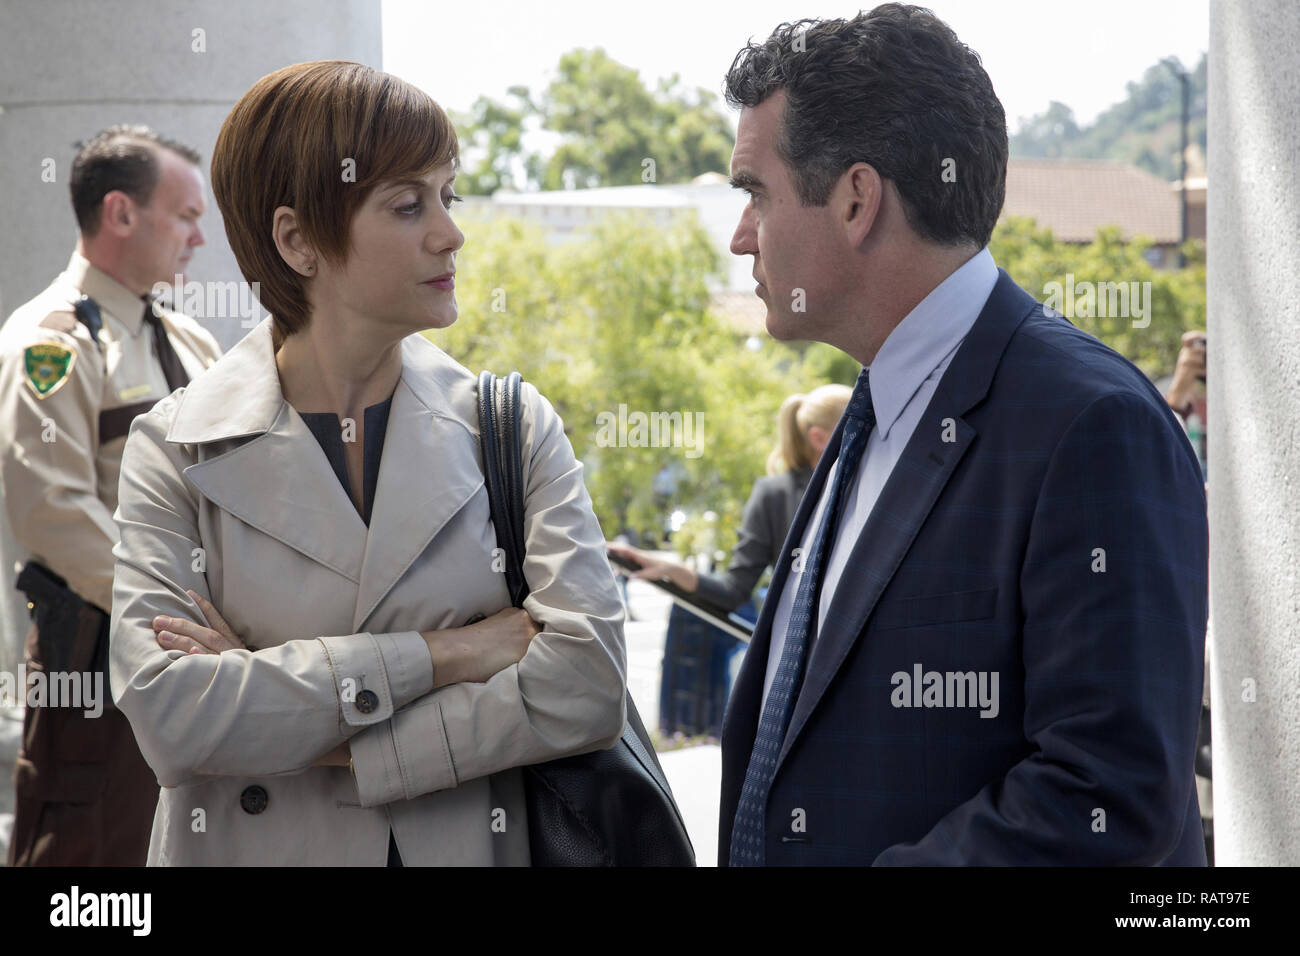 Kate Walsh, Brian D'Arcy James, '13 Reasons Why' Season 2 (2018)  Credit: Netflix / The Hollywood Archive - Stock Image